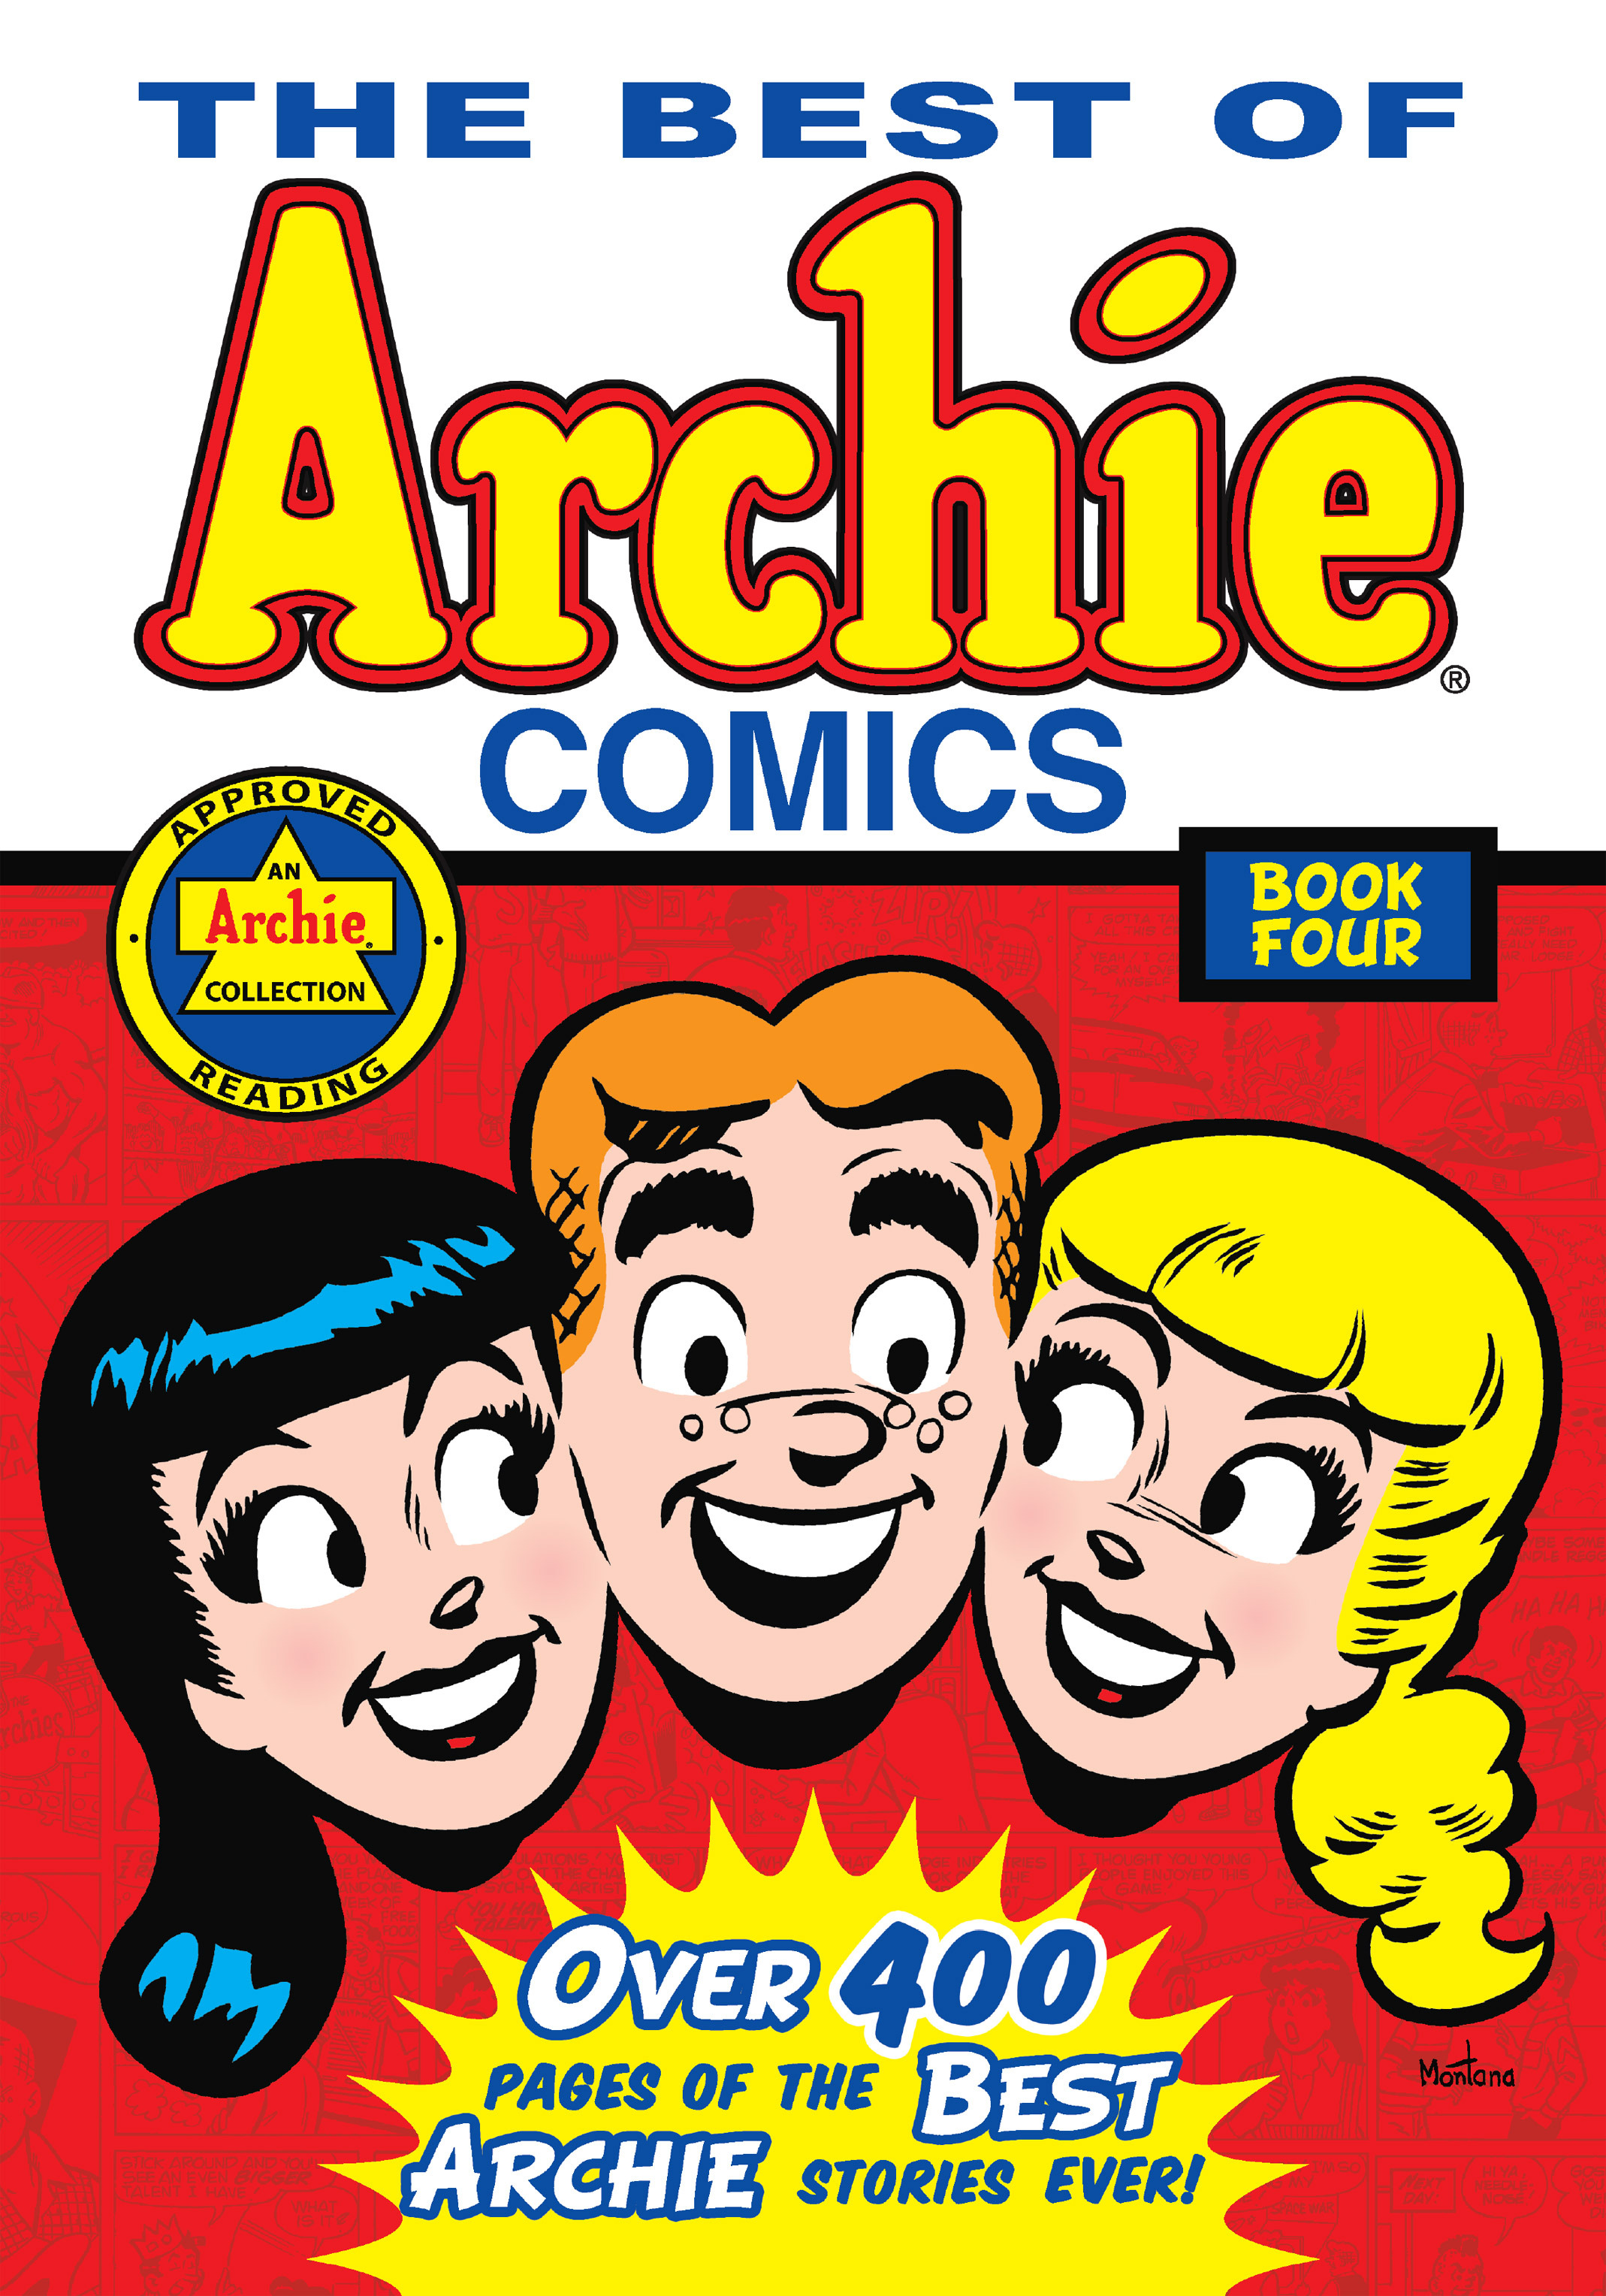 Read online The Best of Archie Comics comic -  Issue # TPB 4 (Part 1) - 1